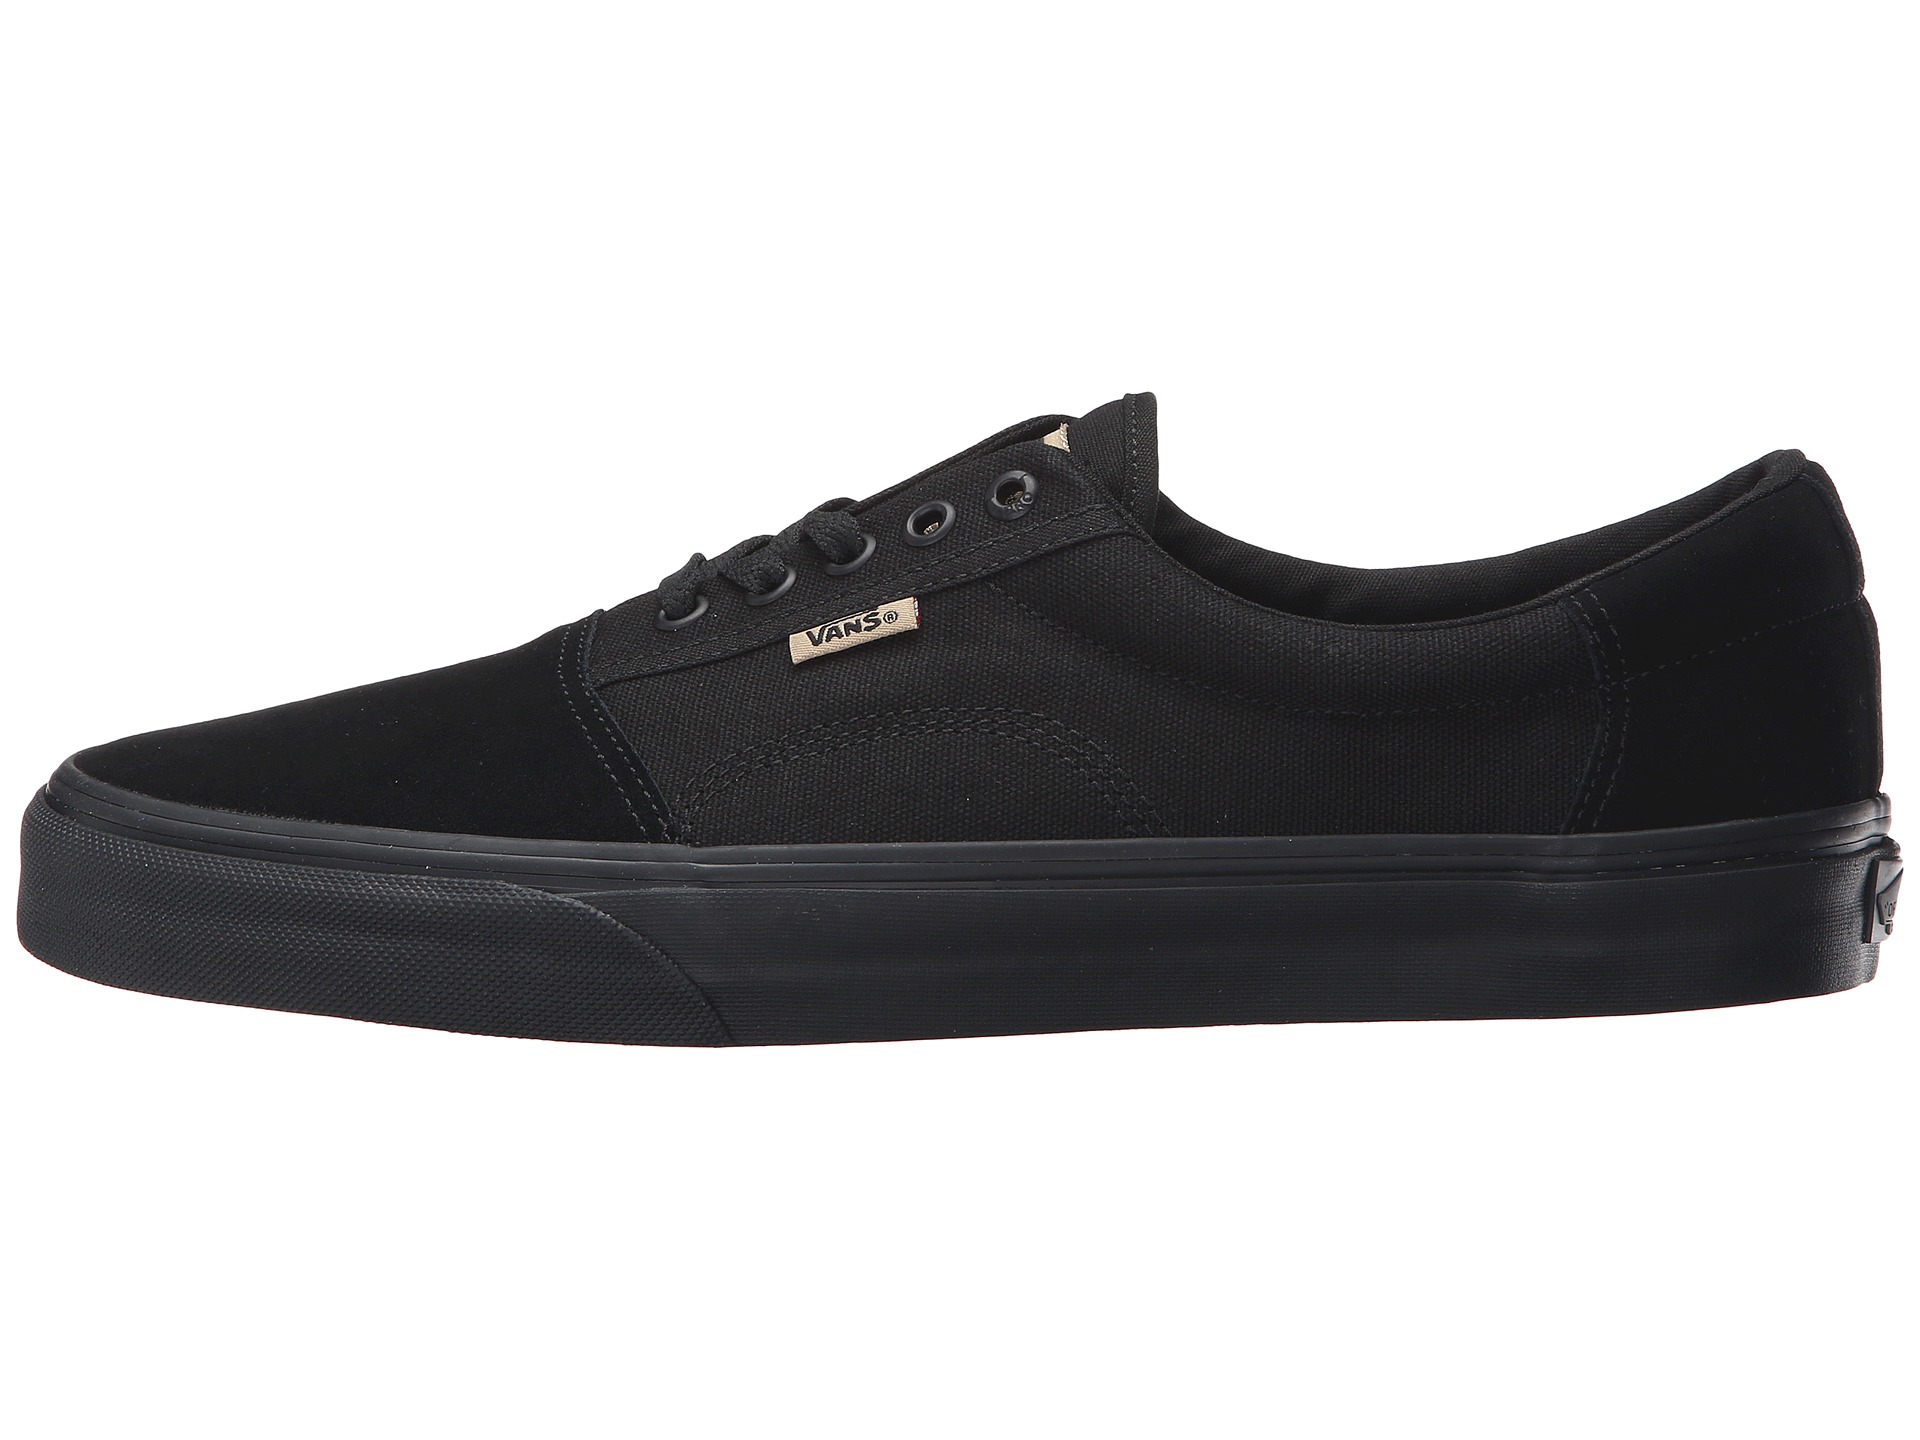 Vans Shoes Geoff Rowley Solos Black Black New Classic Skateboard Sneakers FREE POST